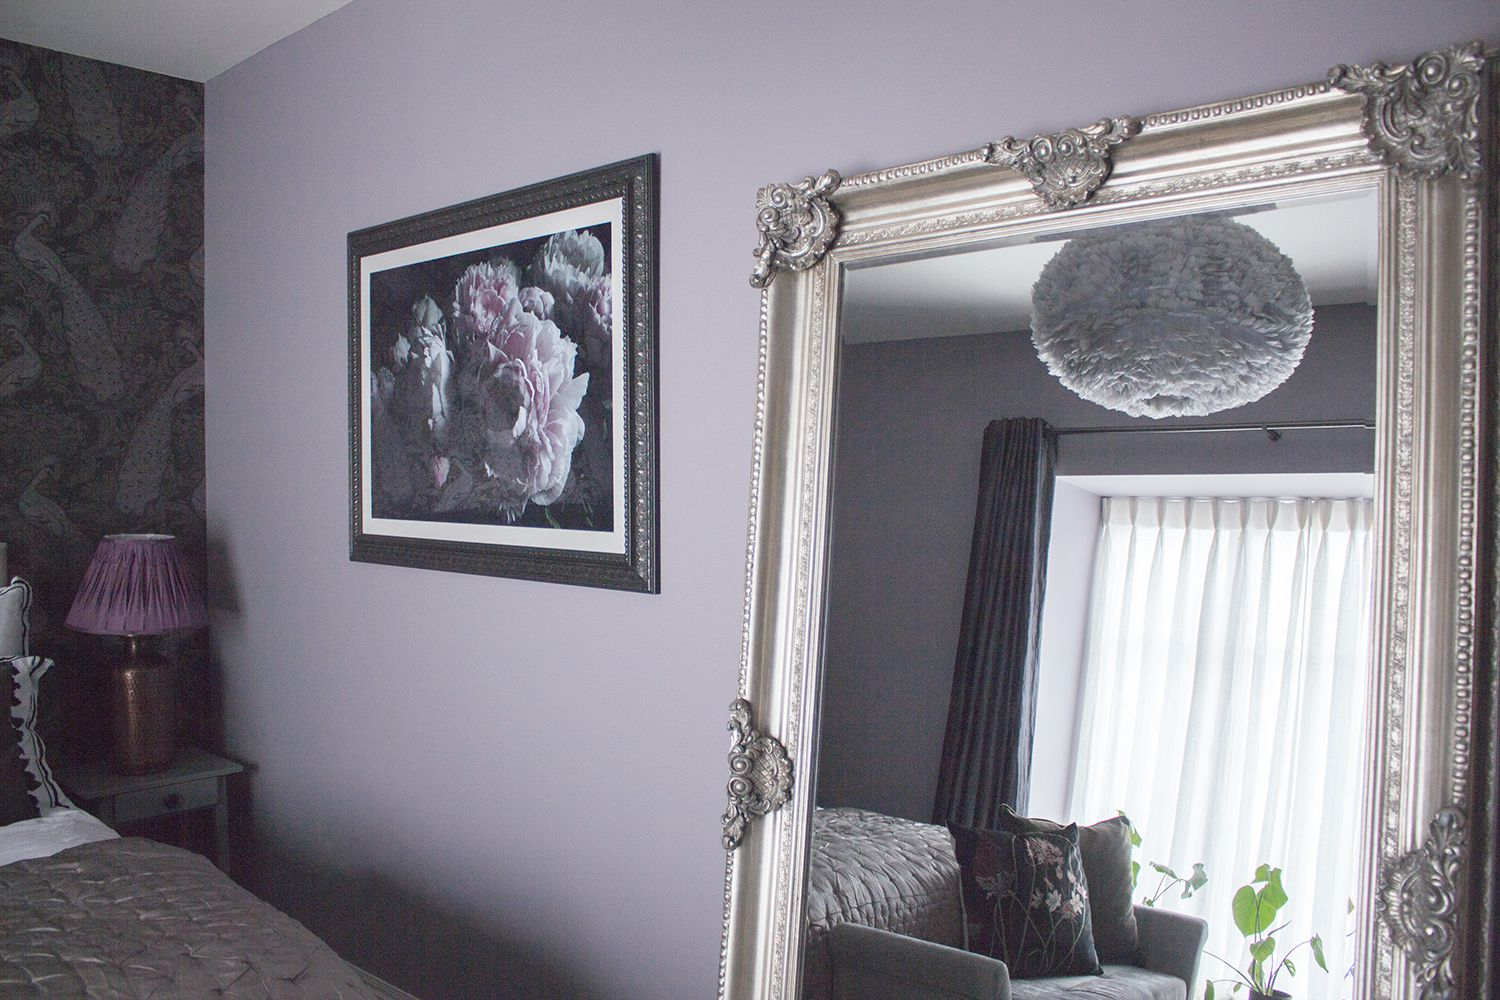 A photo of the ornate leaner mirror against the lilac wall, with the new purple and black floral artwork.